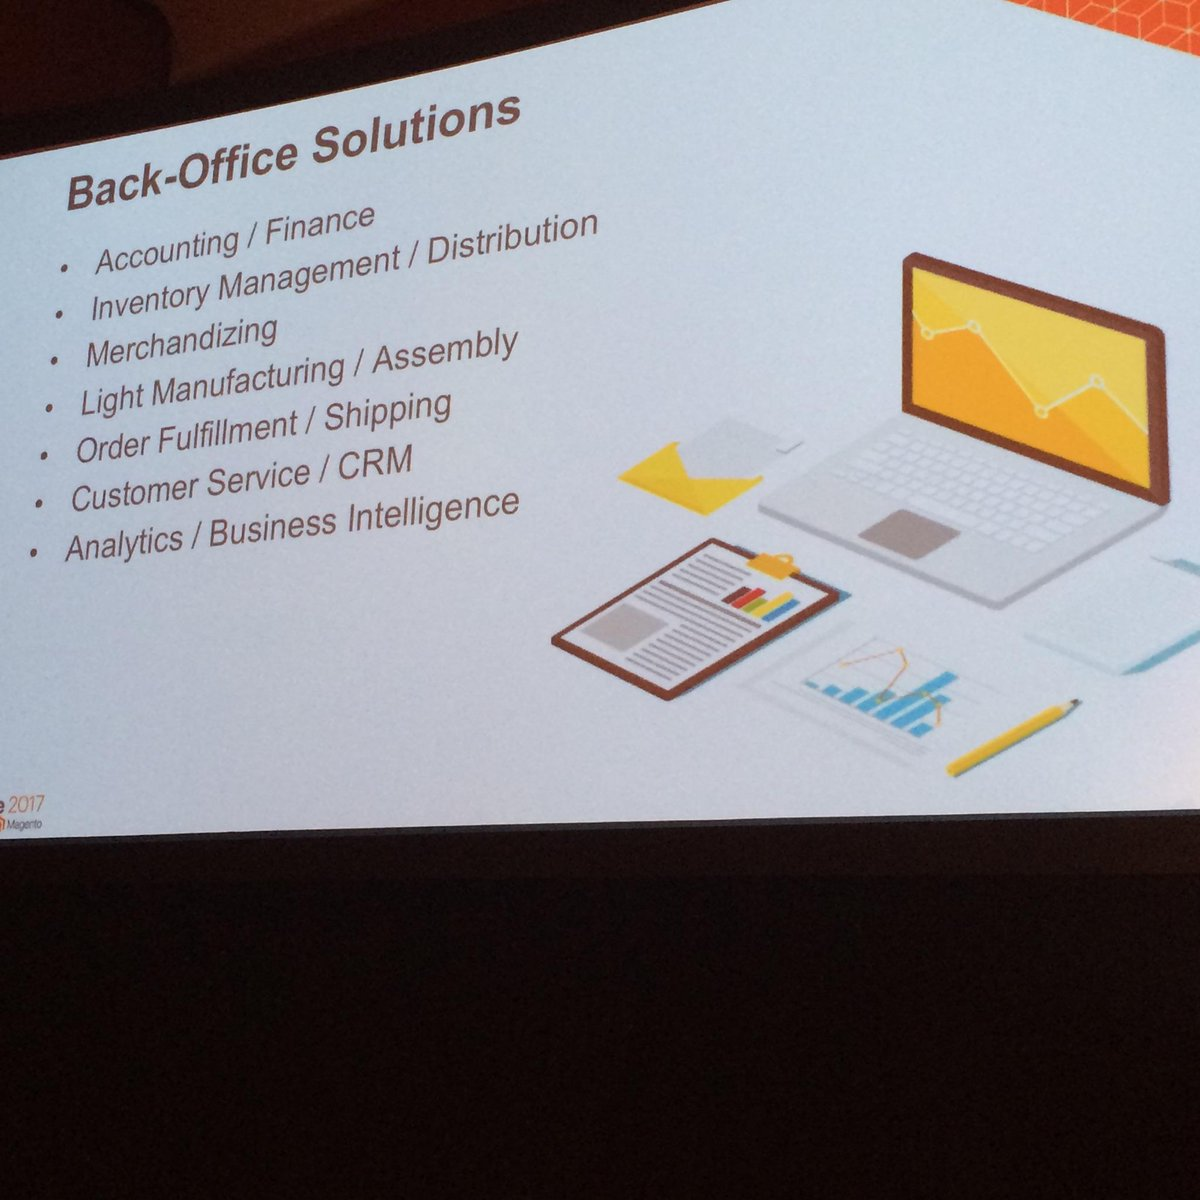 kensium: What you should look for when seeking a new back-office solution for @Magento #MagentoImagine https://t.co/WE5eakkAGy